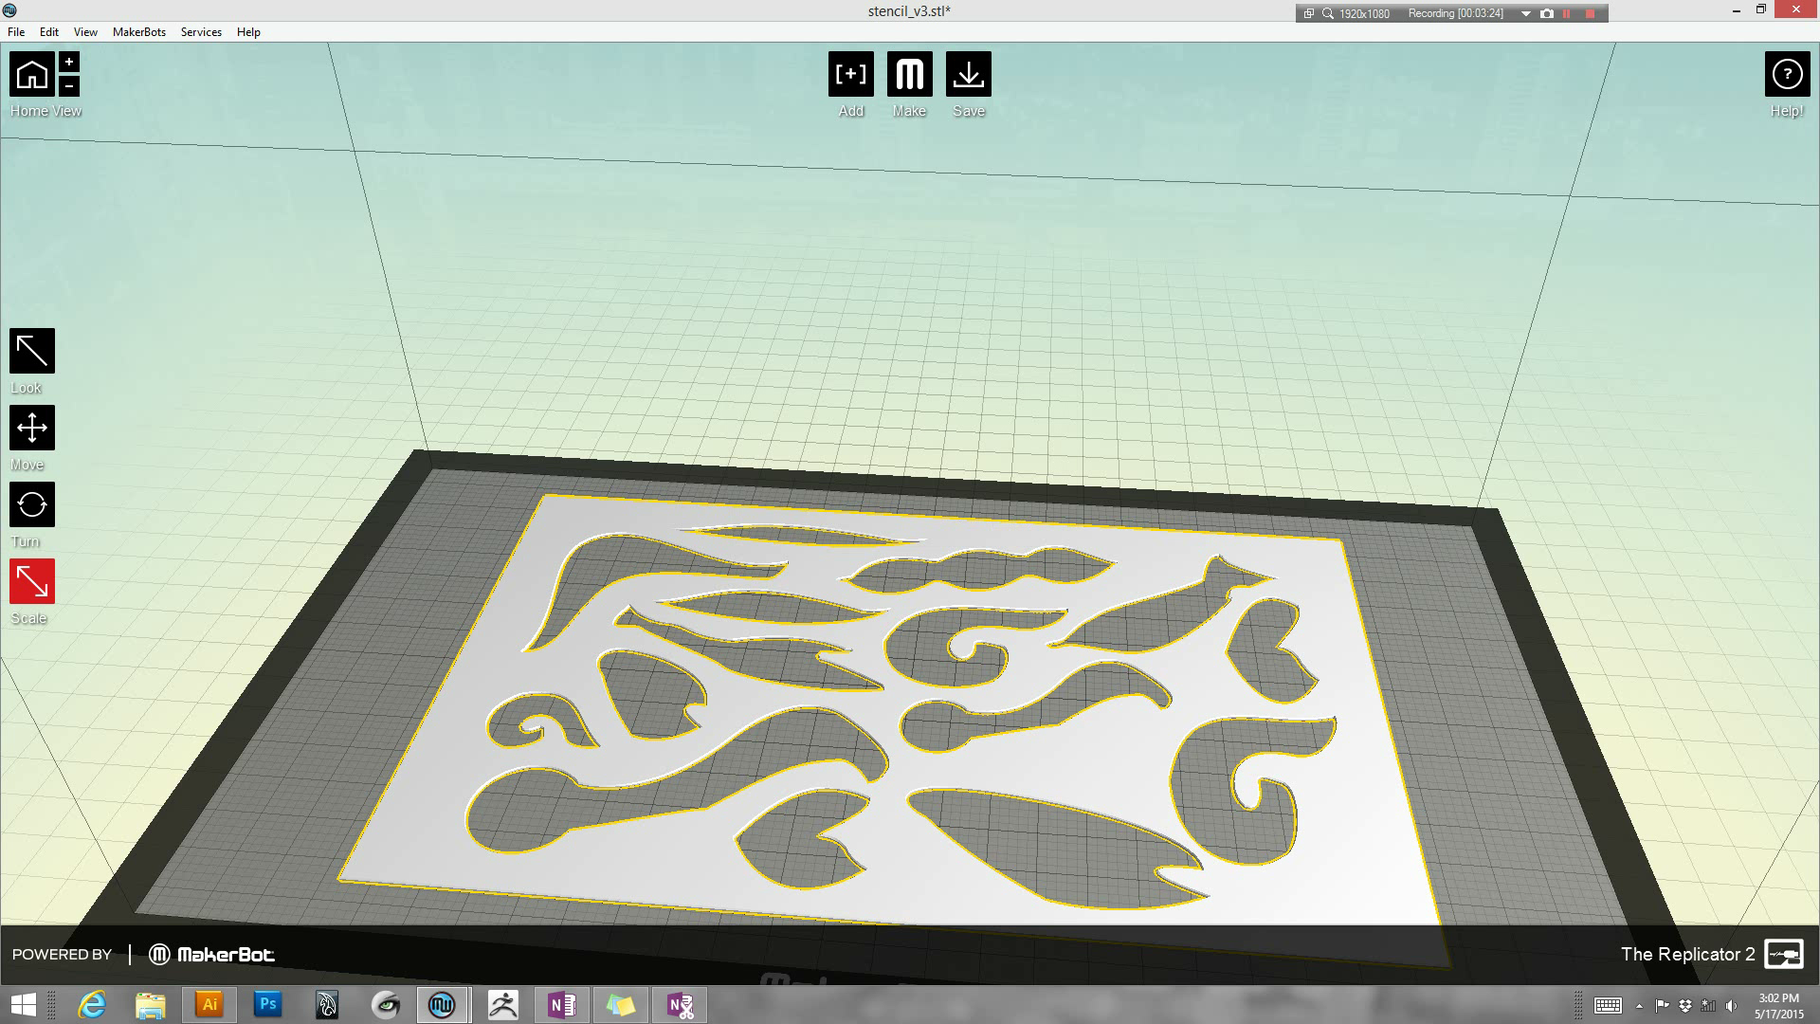 Open STL or OBJ in 3D Printing Software